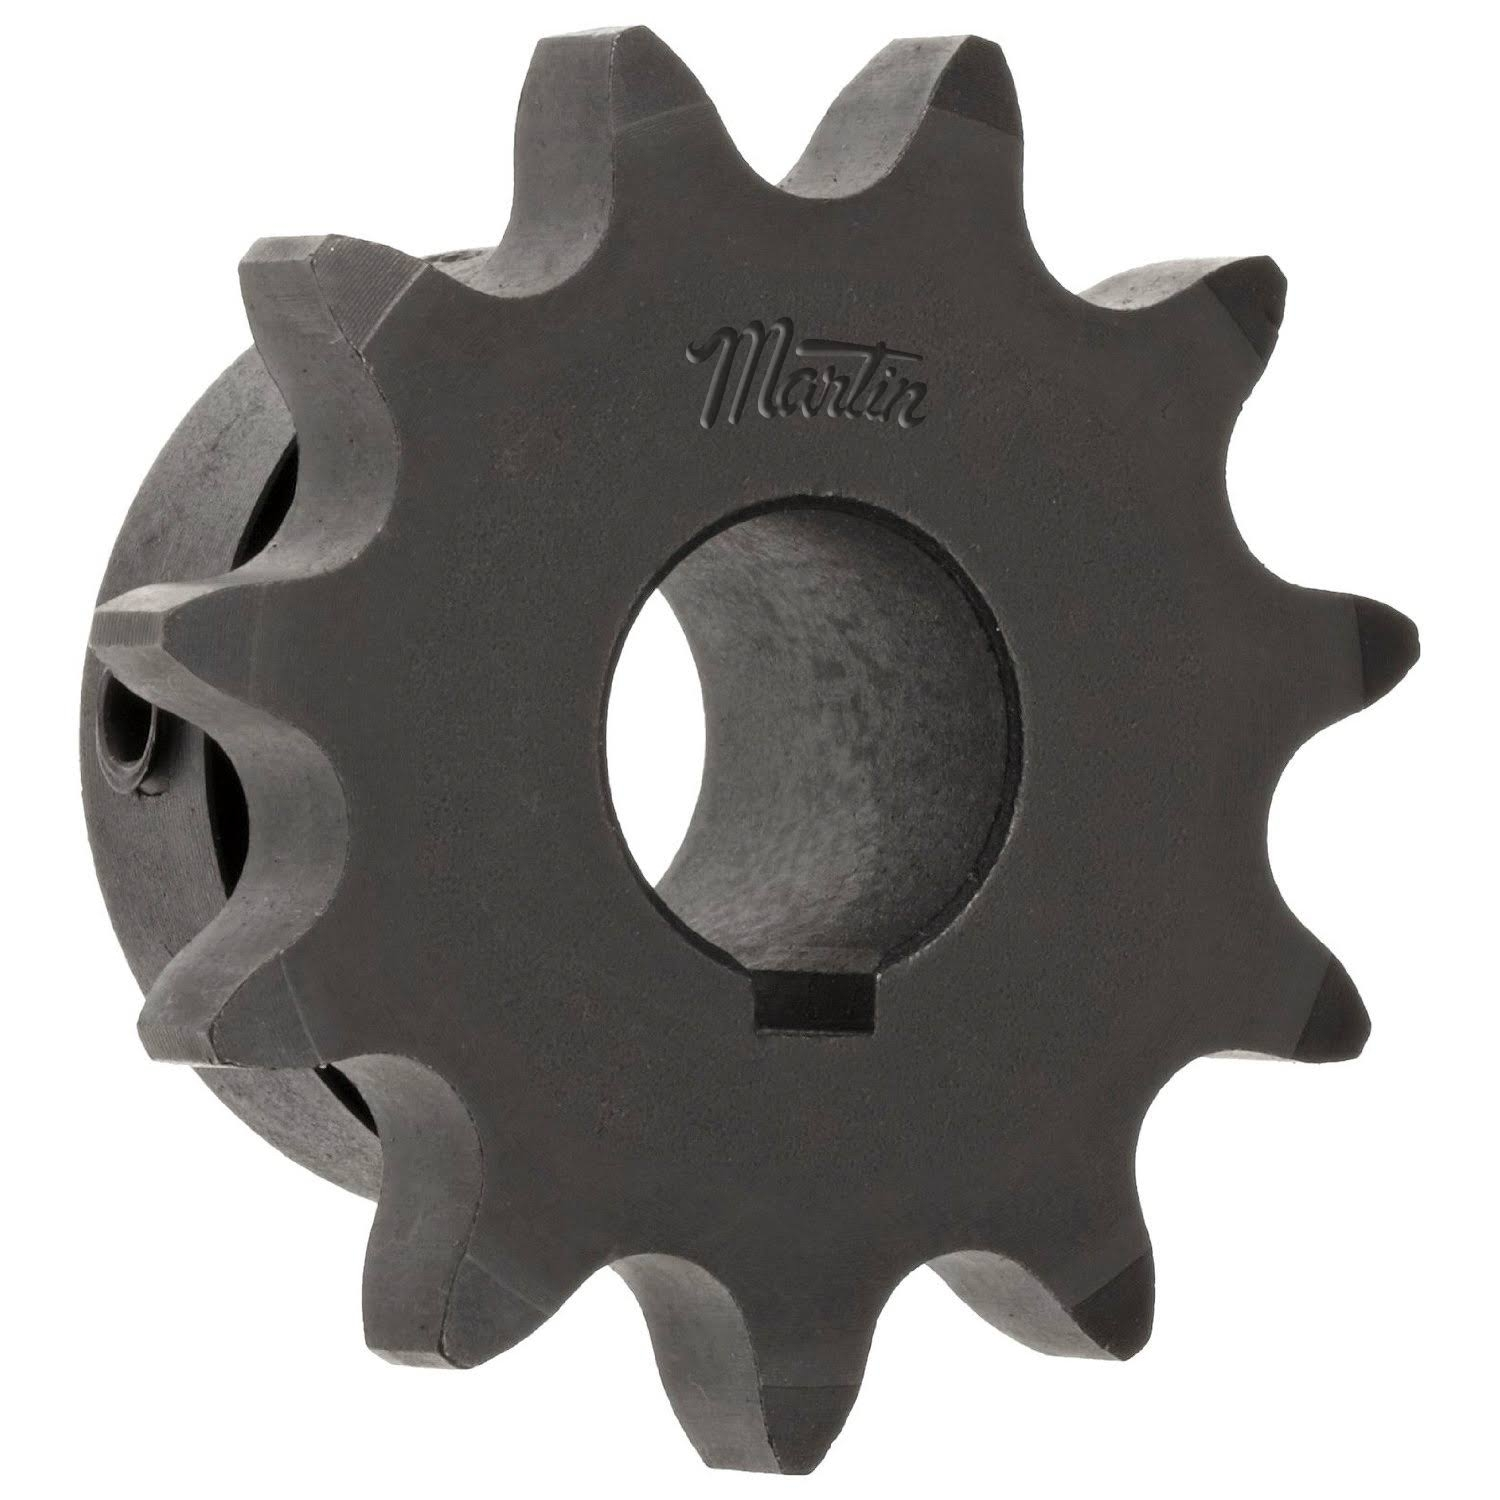 Martin Sprocket 40BS12-5/8 PITCH: #40 TEETH: 12 BORE: 5/8 INCH